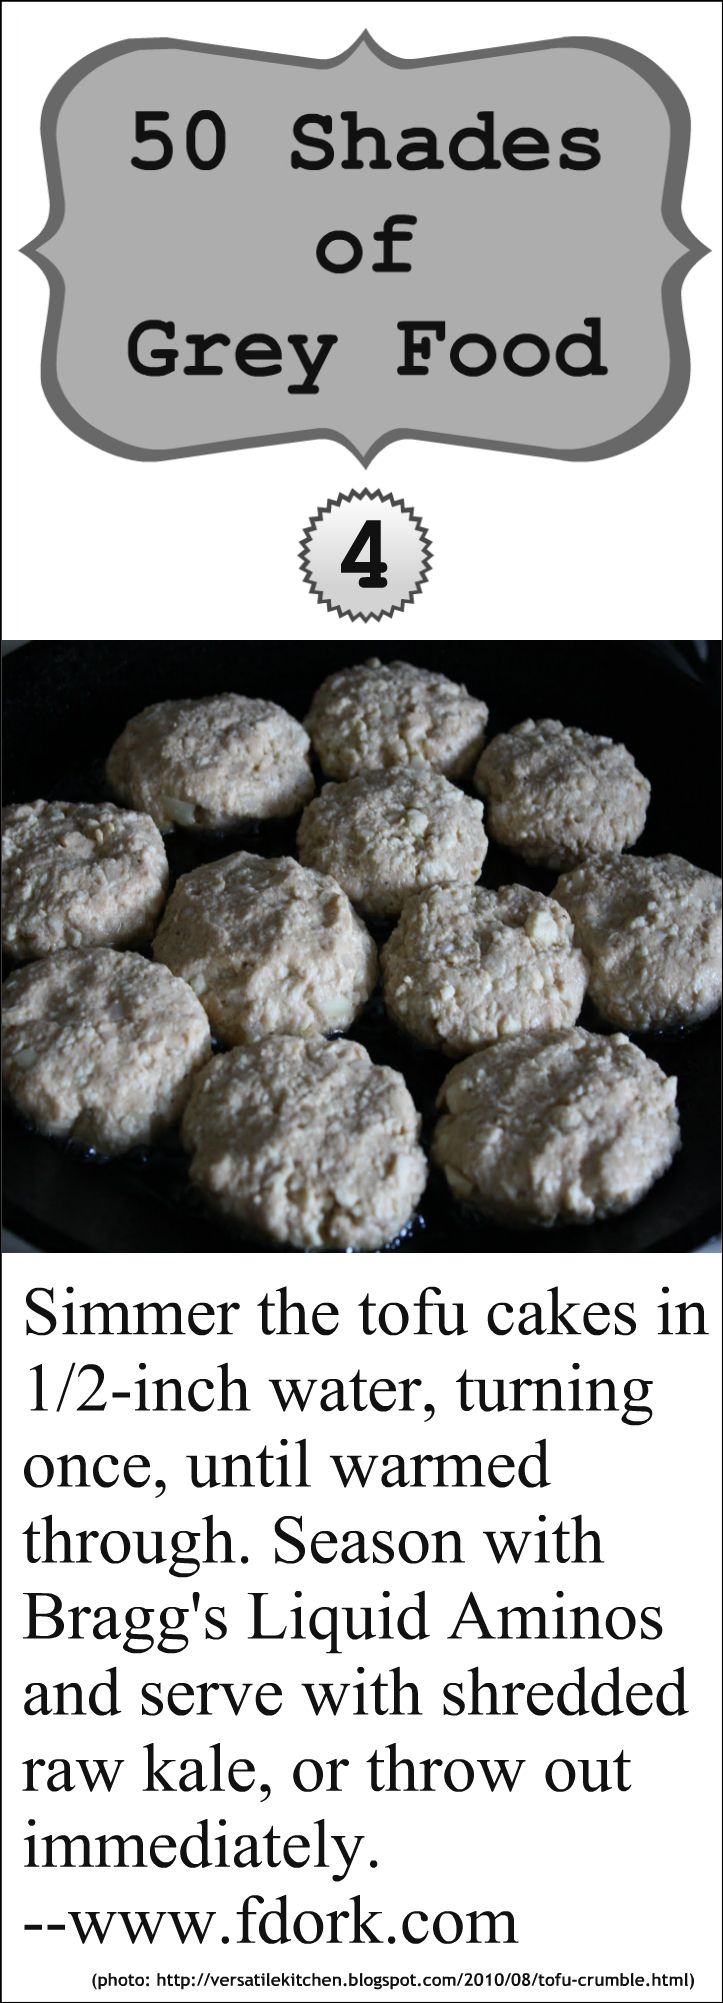 50 Shades of Grey Food: Hilarious Grey Food | Post #4: Grey Tofu Cakes #humor #satire #food #foodhumor #foodsatire